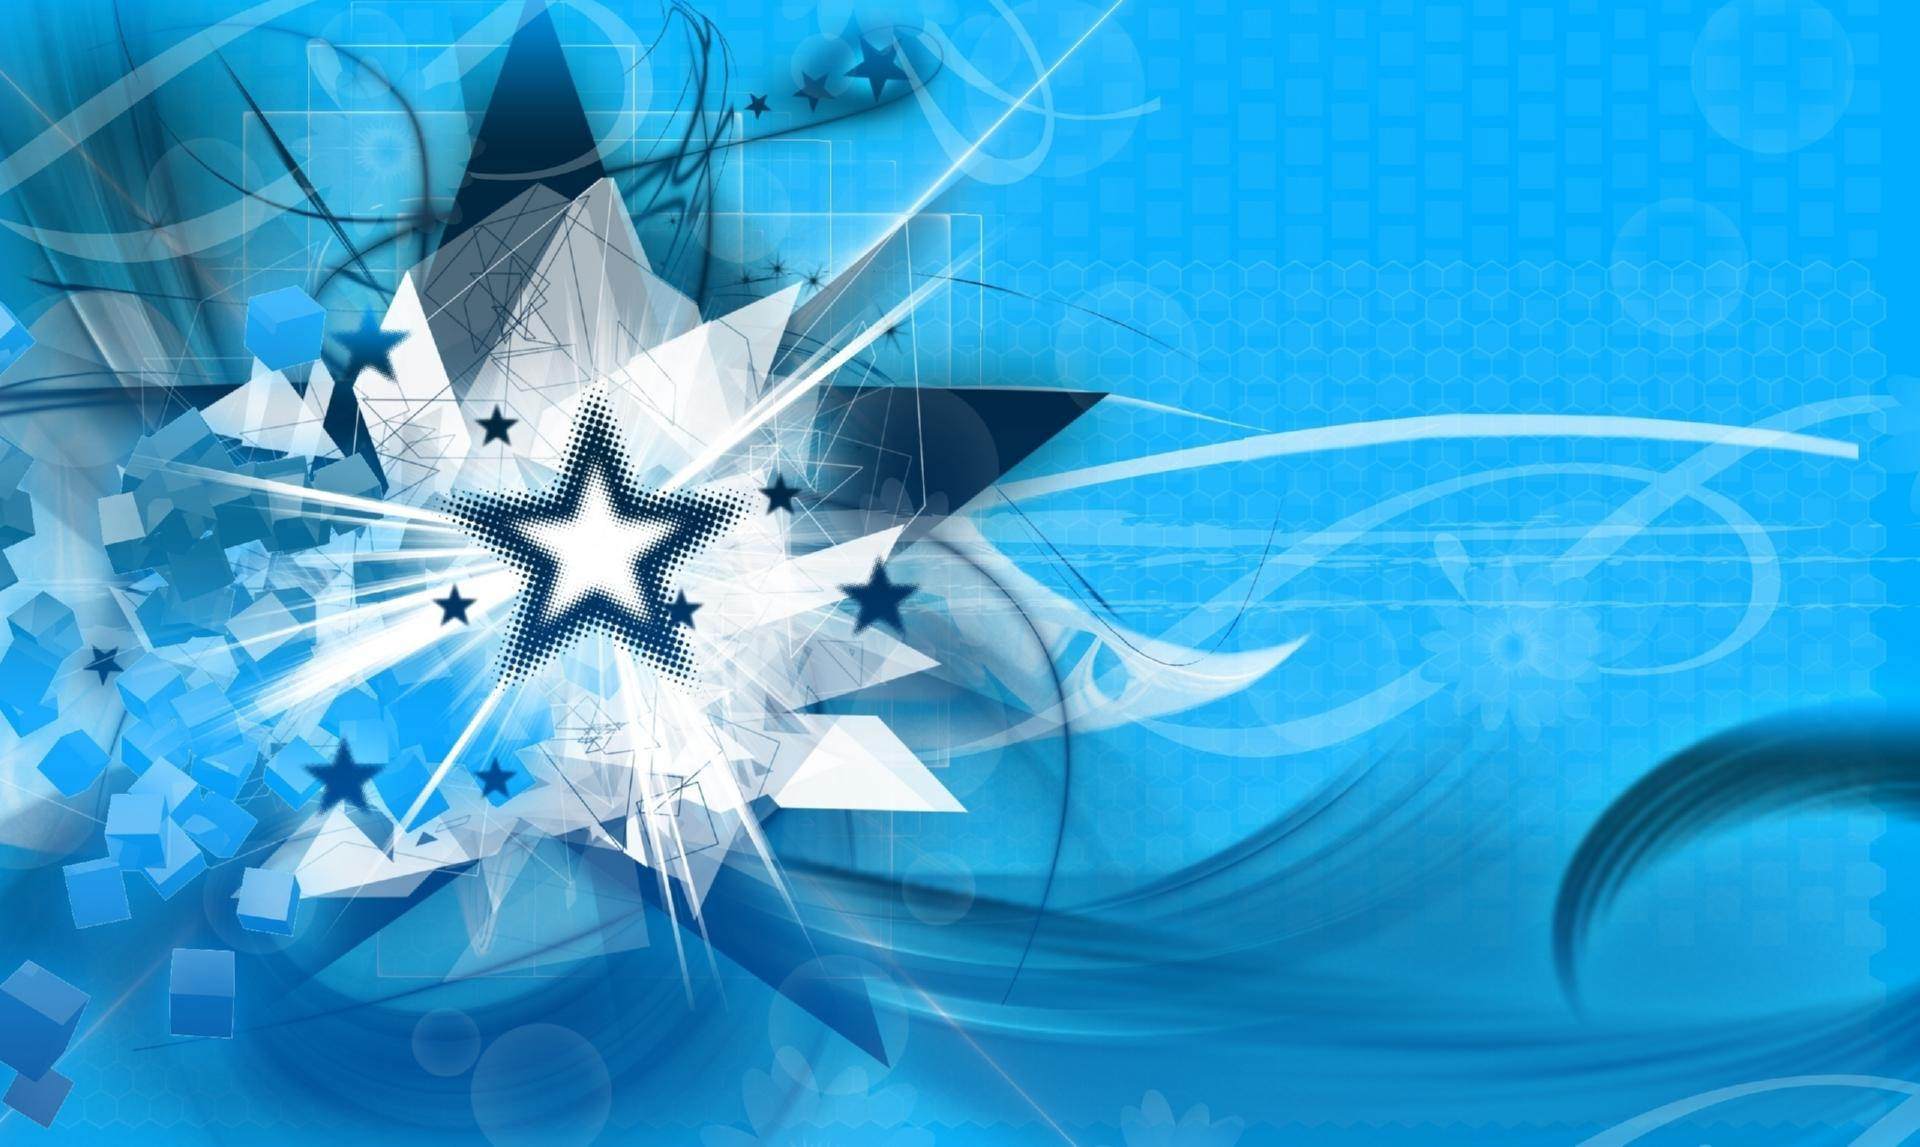 Blue shapes wallpapers HD quality